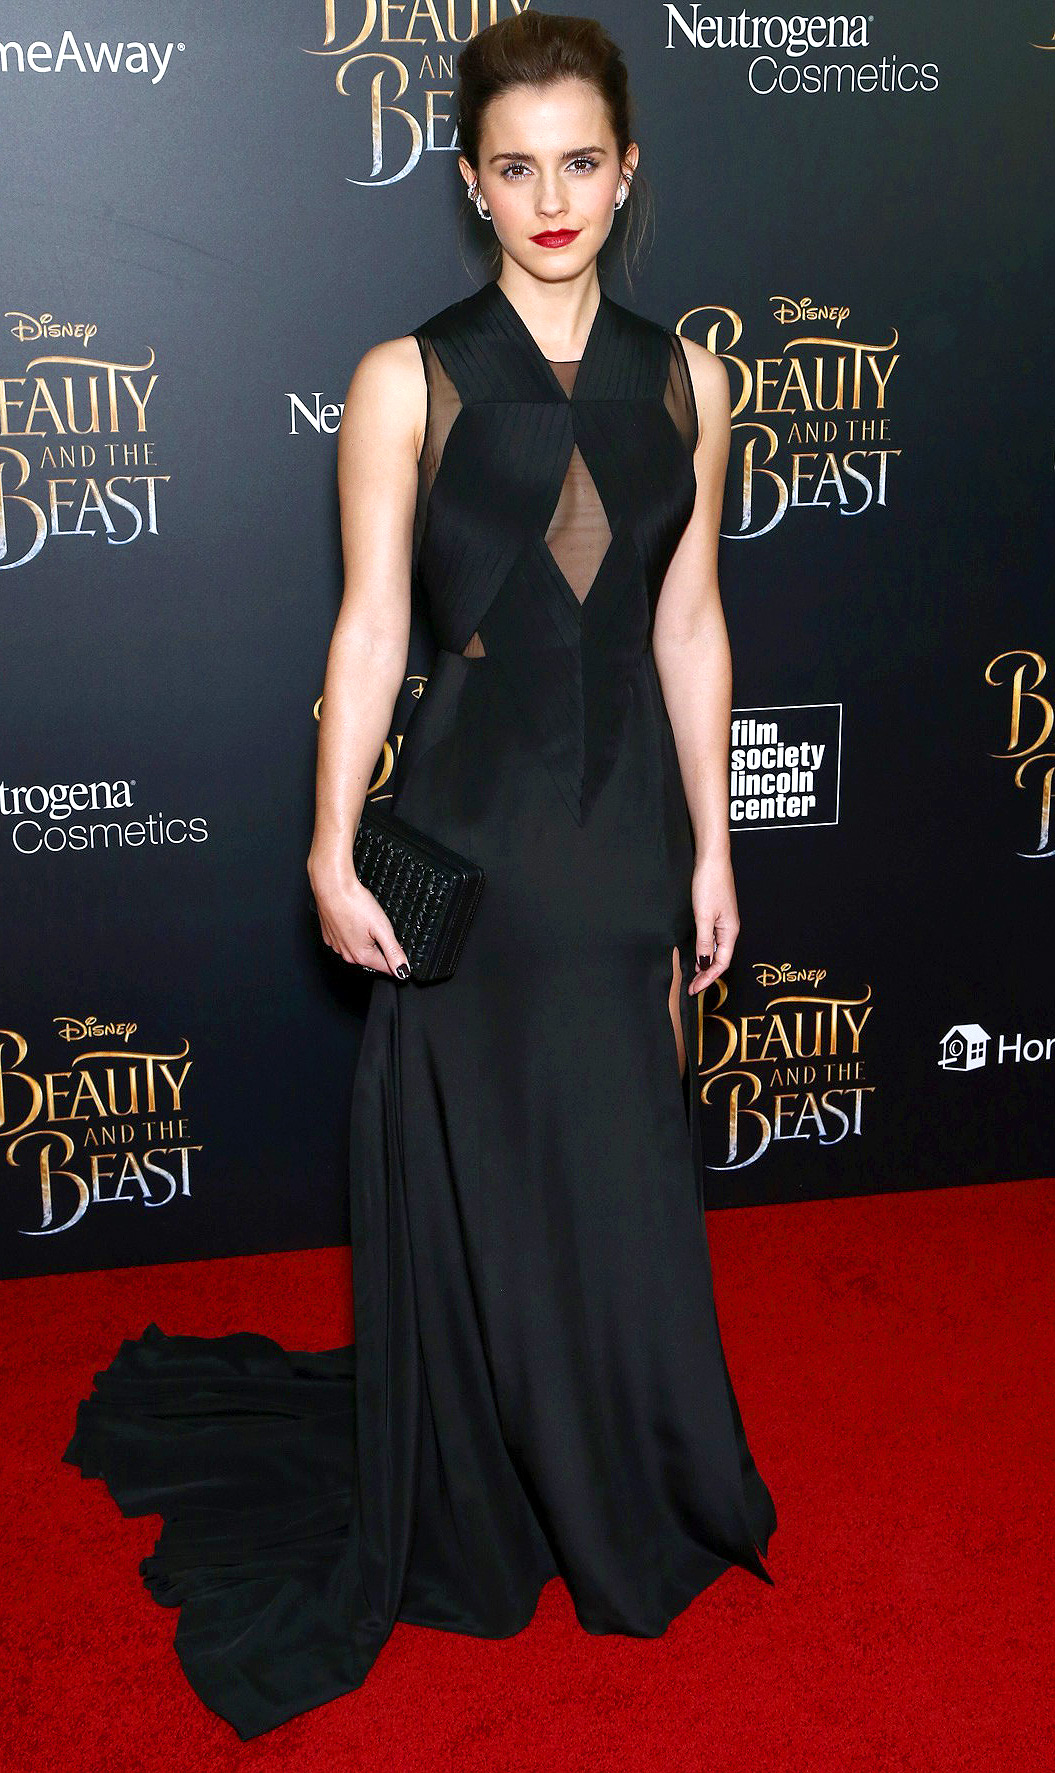 Celebrities attend the New York screening of 'Beauty and the Beast'